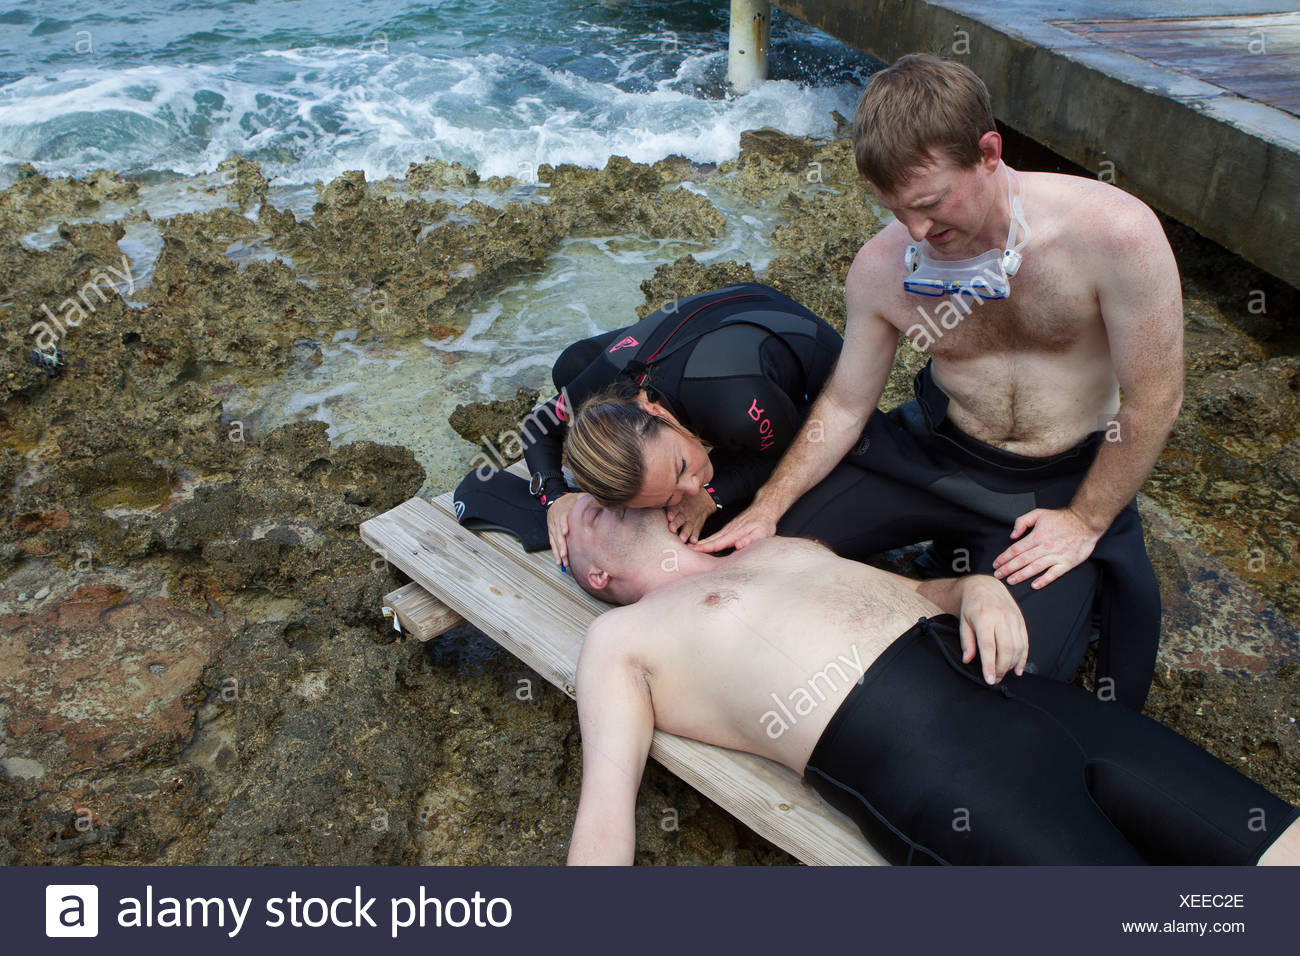 Assessment of scuba diving accident victim - Stock Image